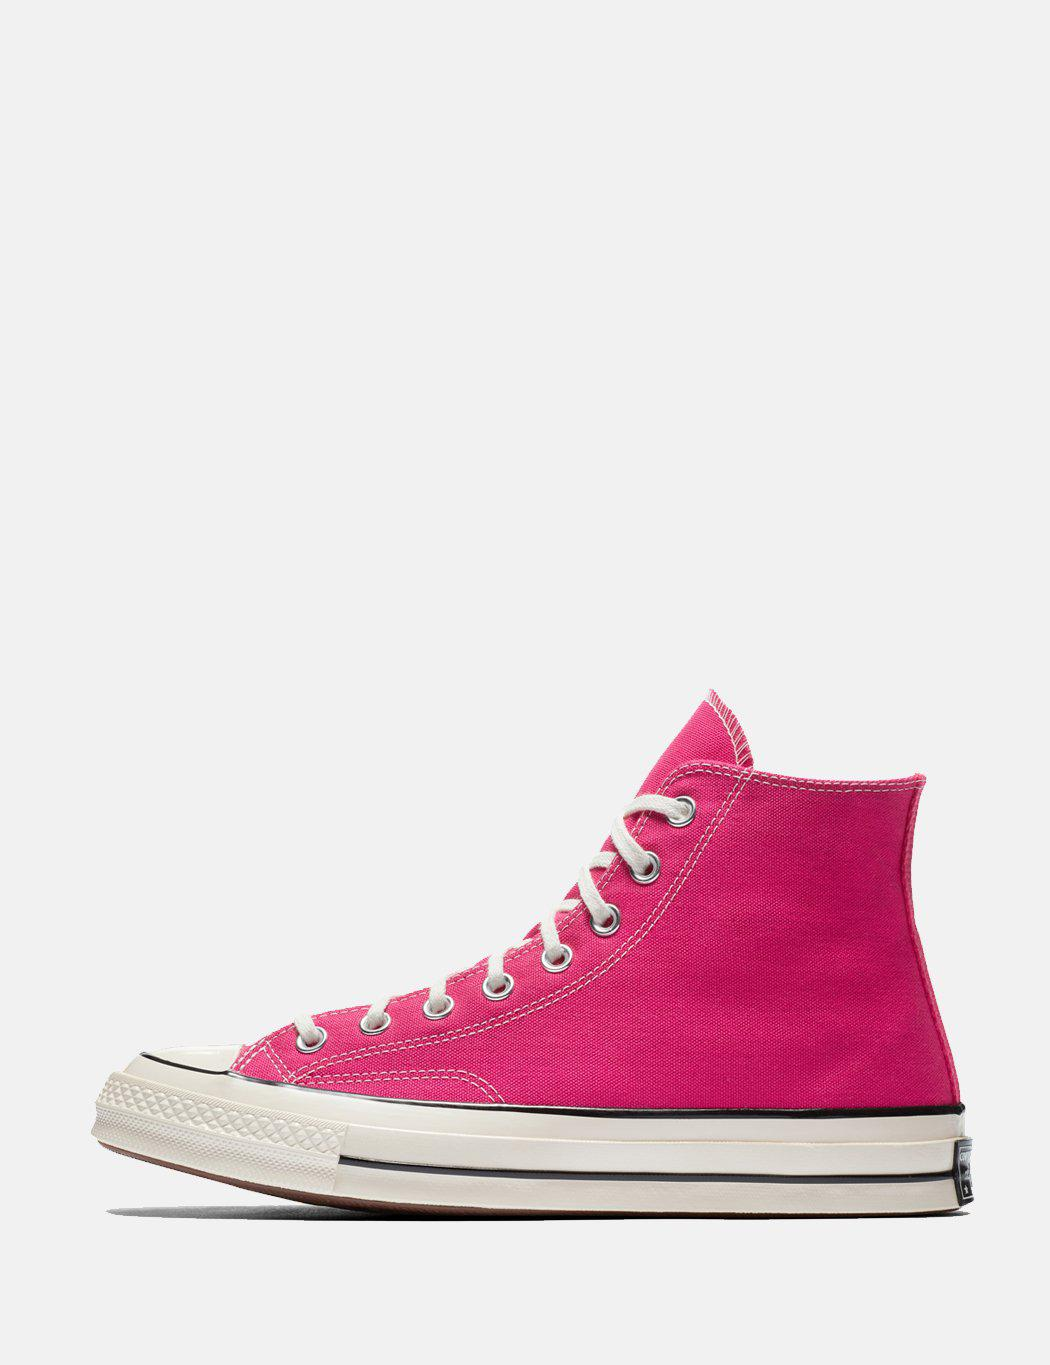 Lyst - Converse 70 s Chuck Hi 161442c (canvas) in Pink for Men 6702b06fb